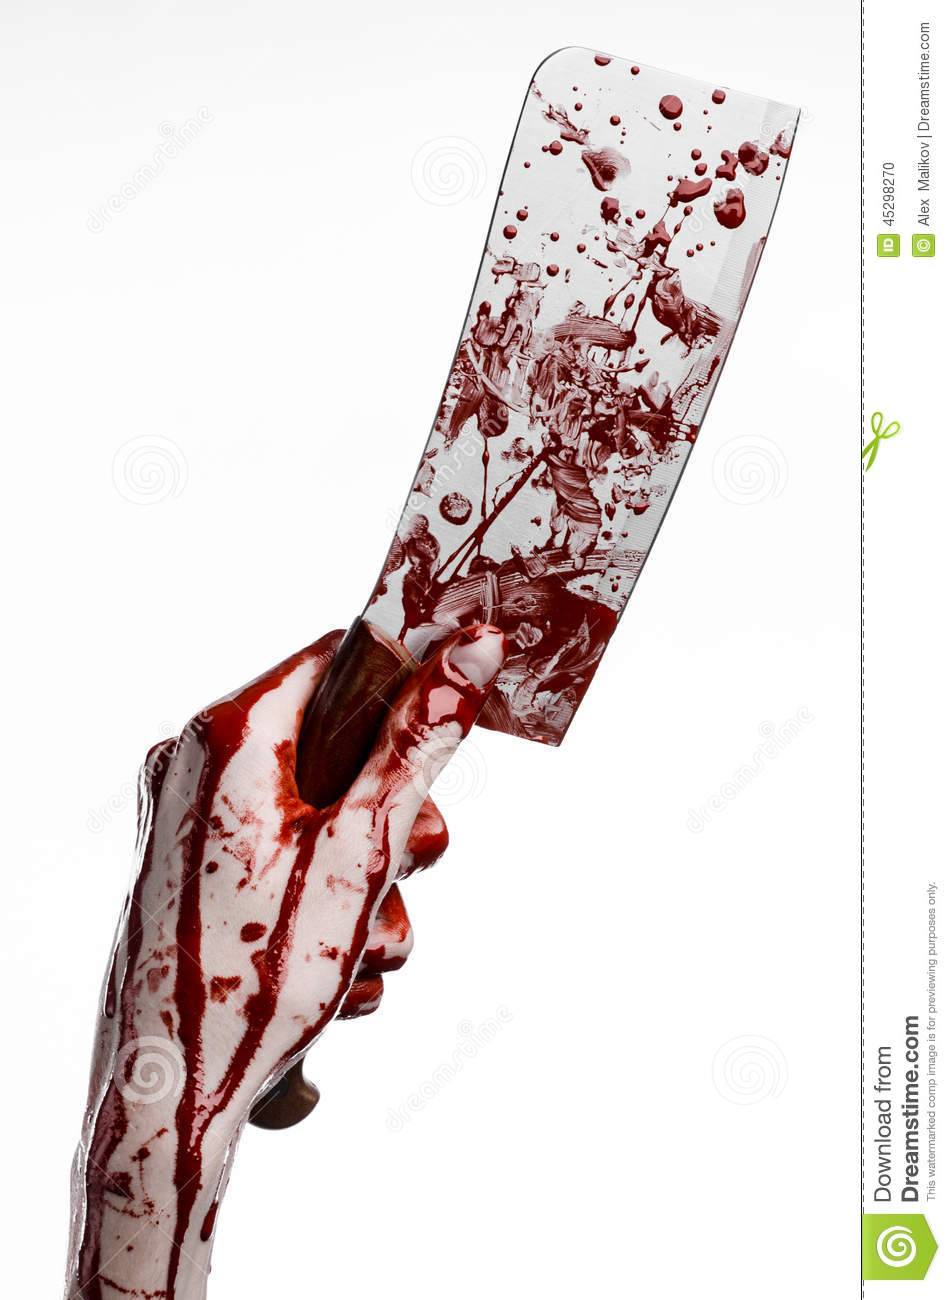 bloody hand holding - photo #13